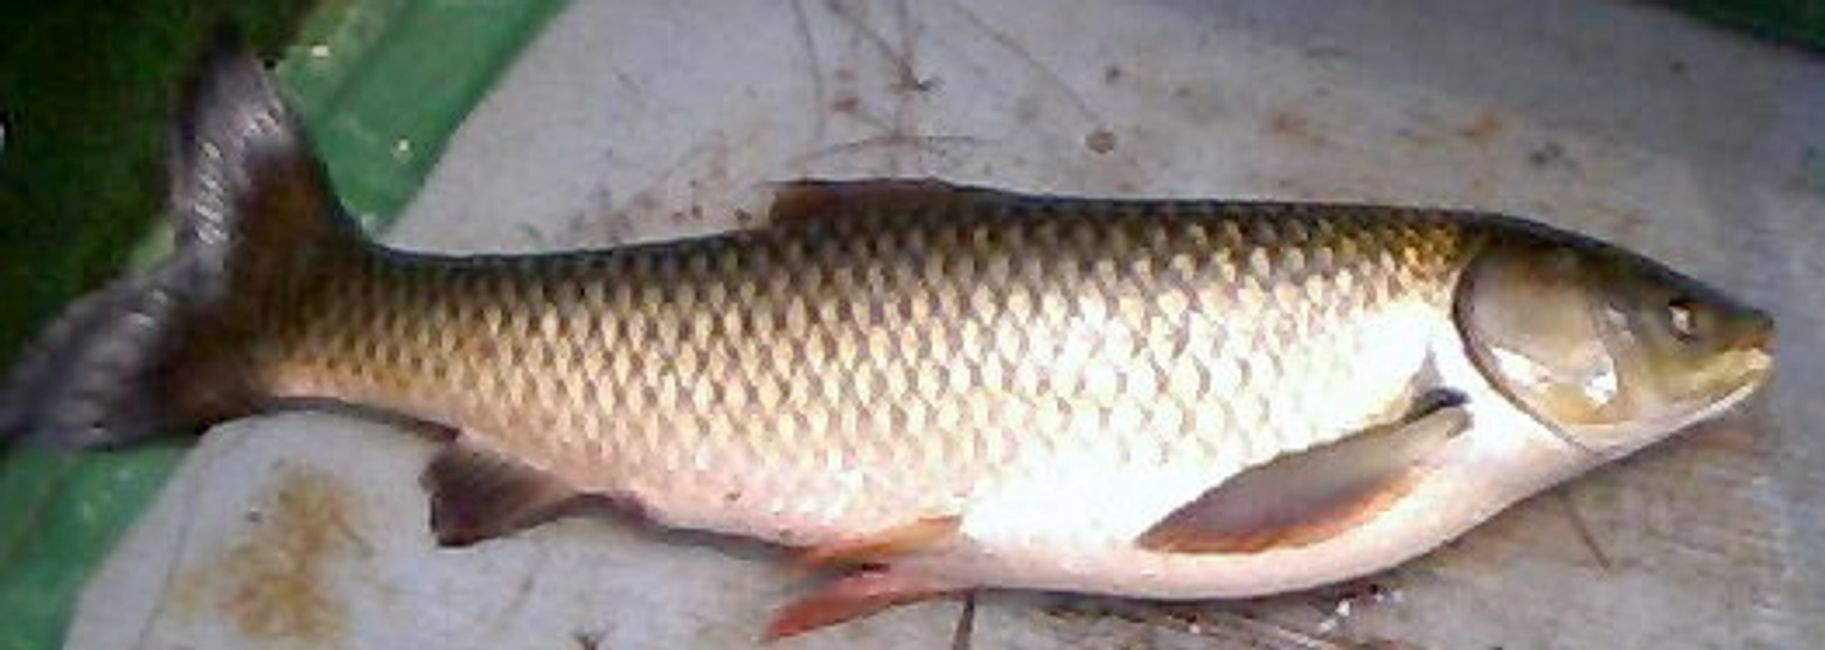 Overton Fisheries Fish Farm & Hatchery Stocks Triploid Grass Carp in Texas Lakes & Ponds